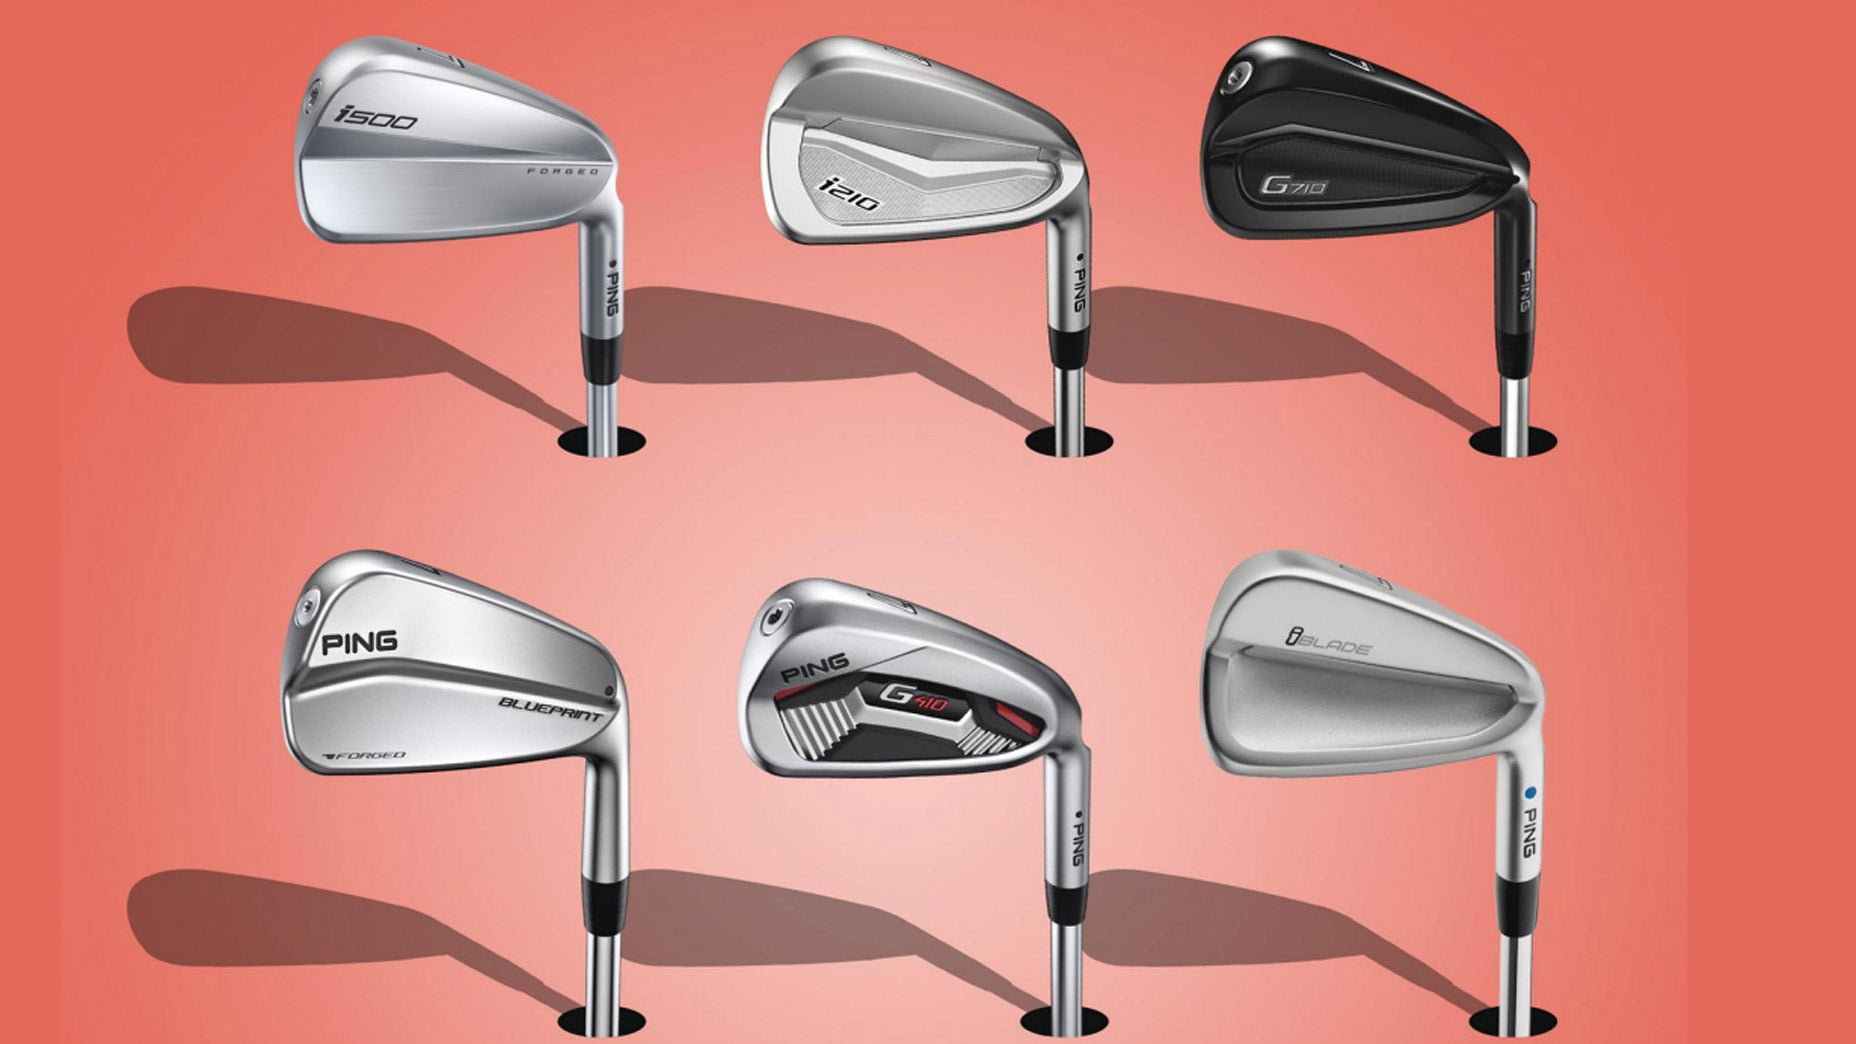 Ping golf irons